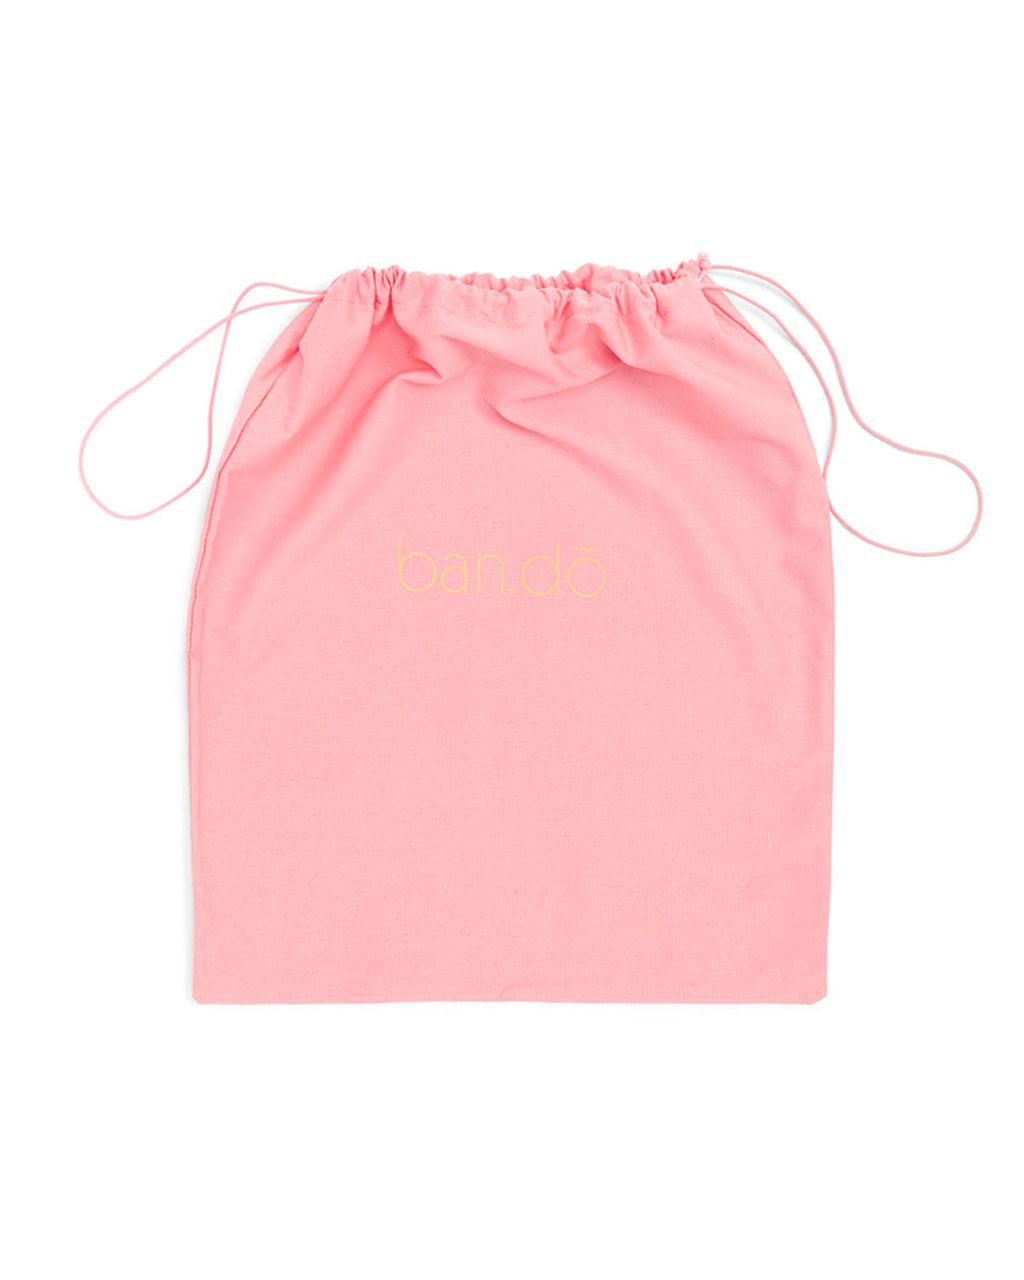 Pink bando branded duster bag.